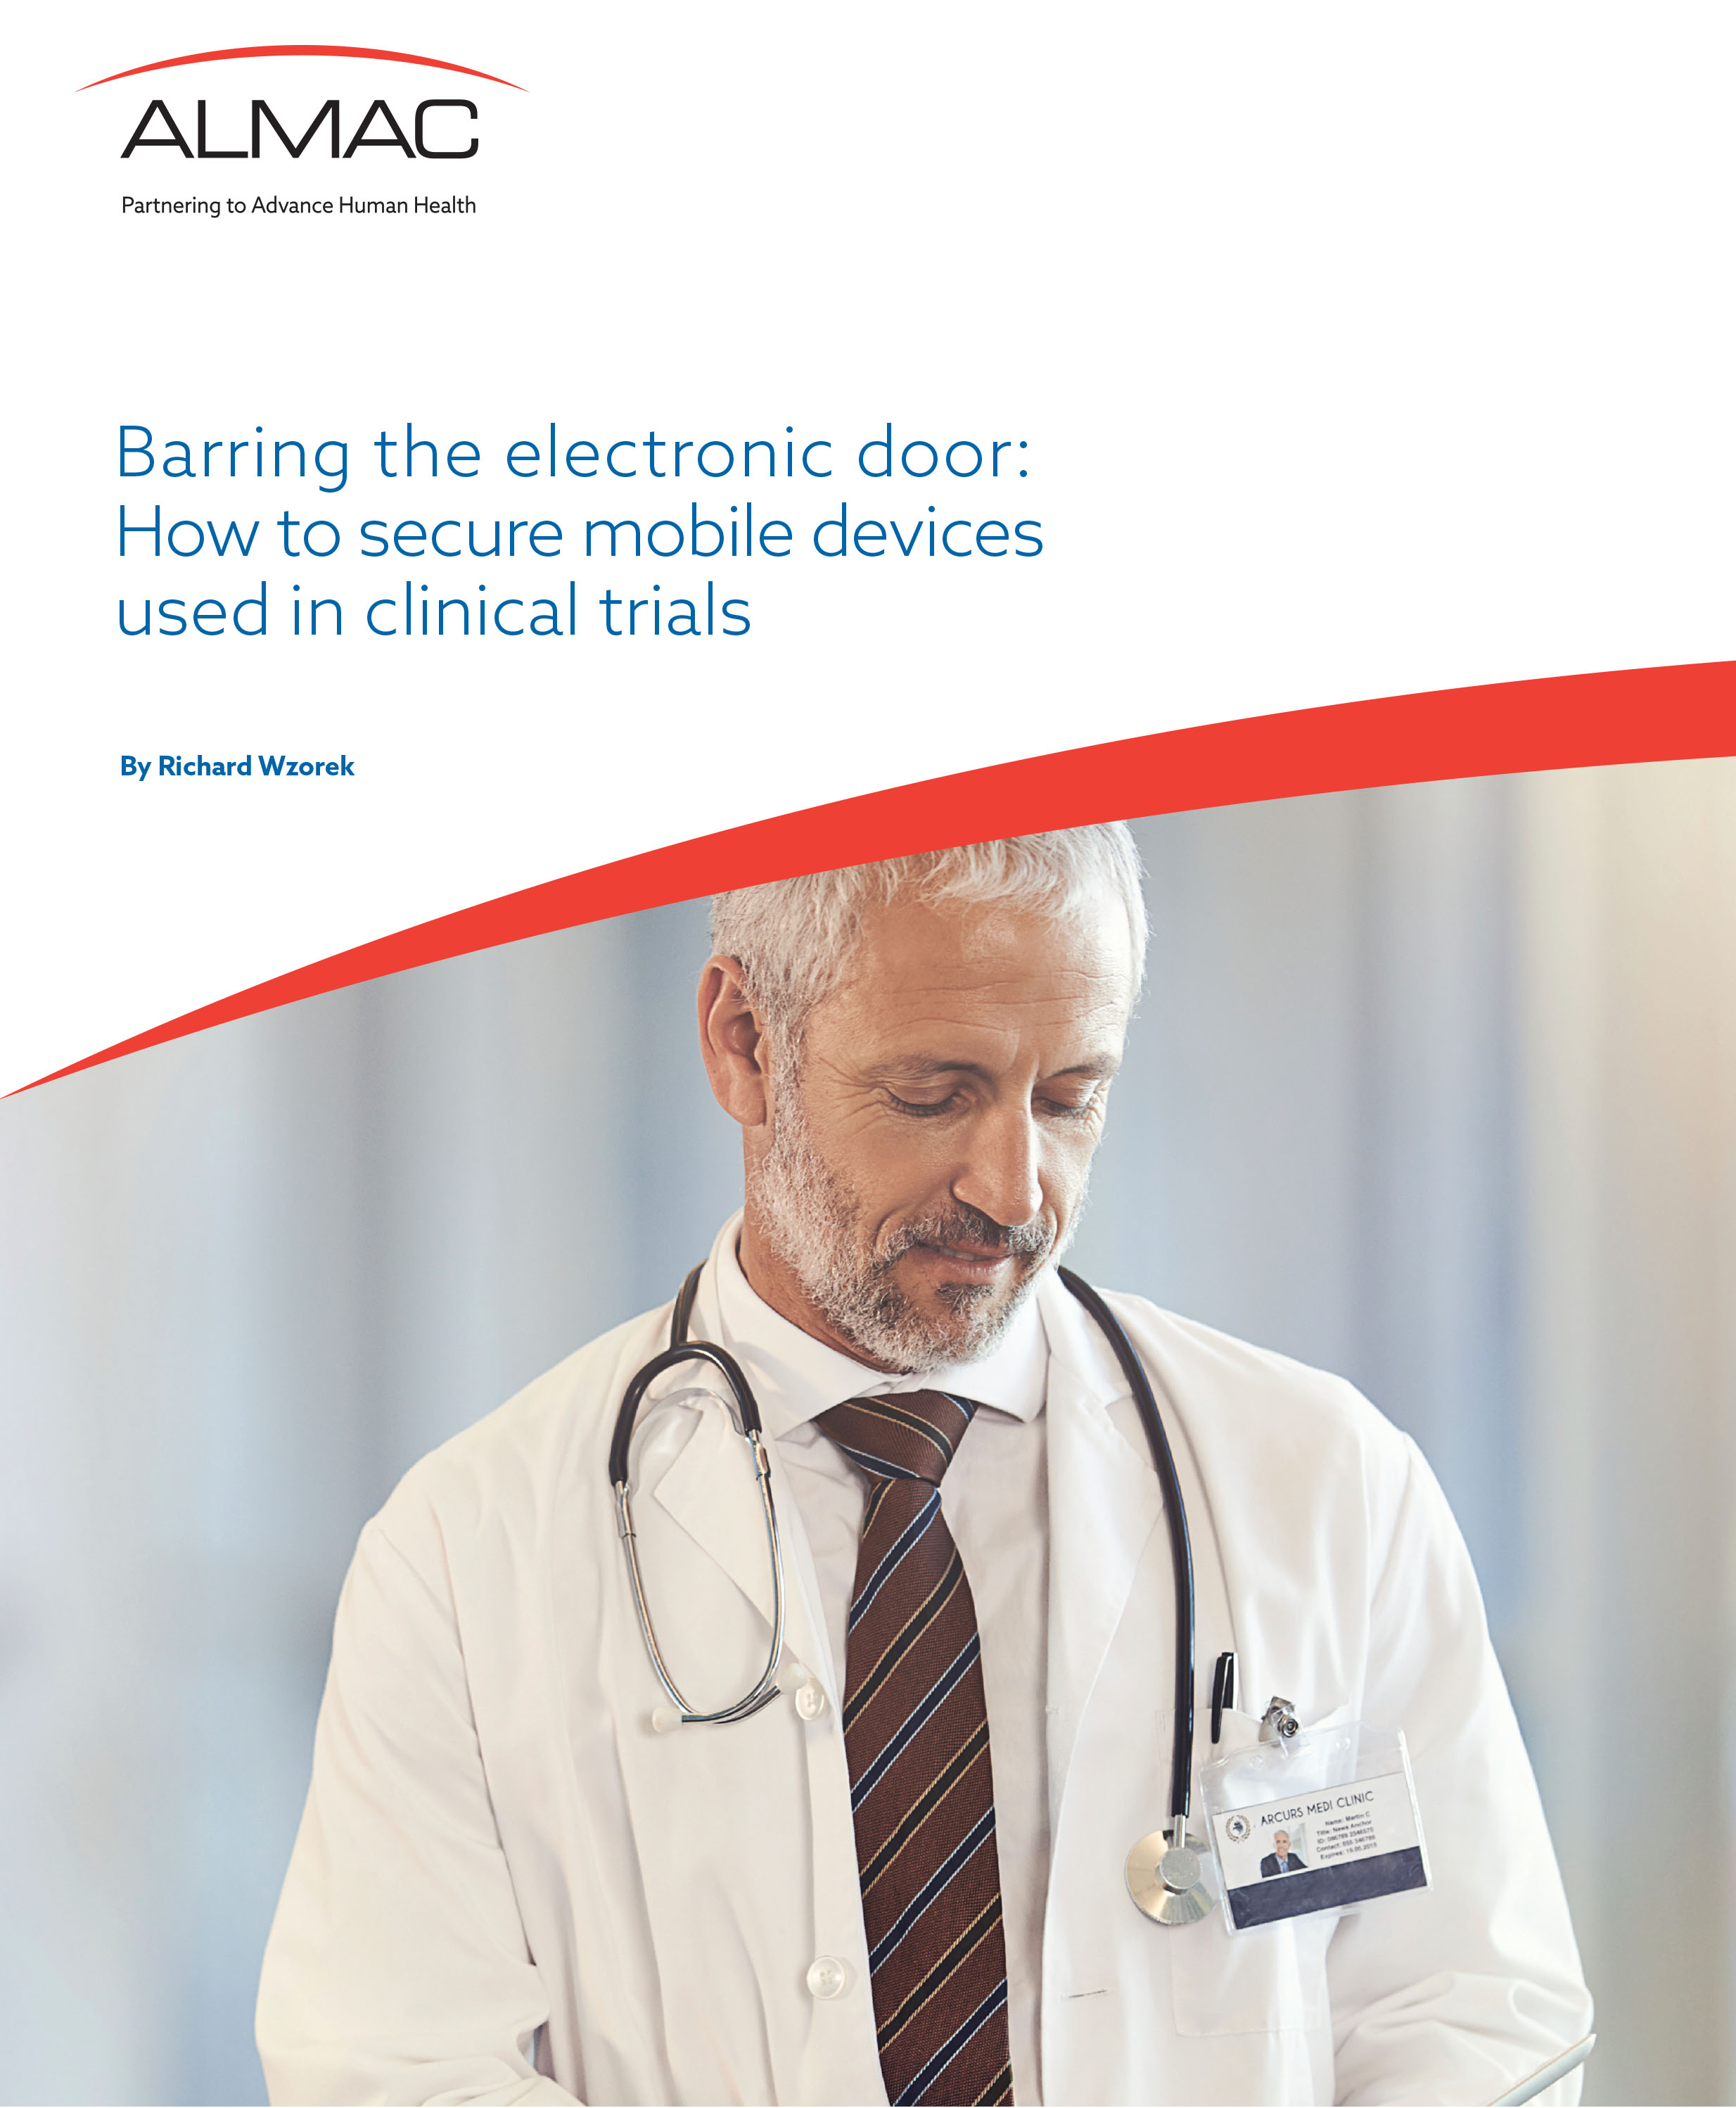 Barring the Electronic Door: How to Secure Mobile Devices Used in Clinical Trials